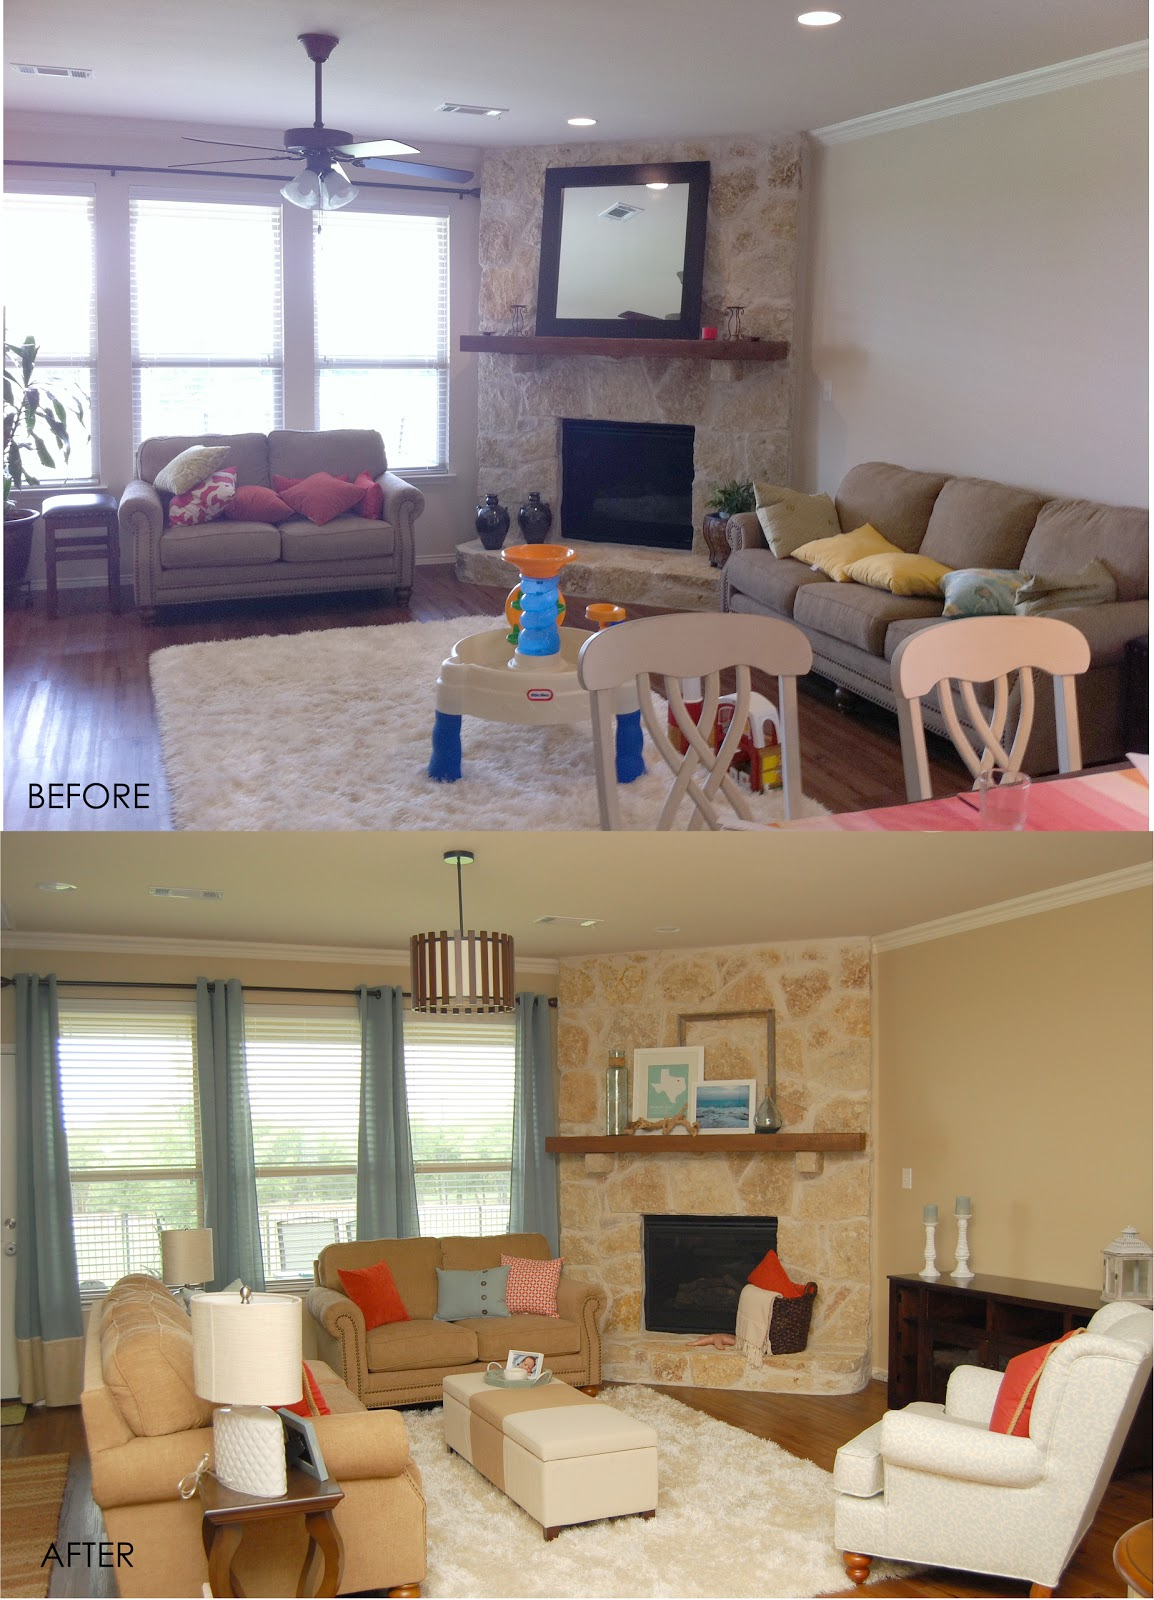 Style With Wisdom: Coral And Blue Living Room